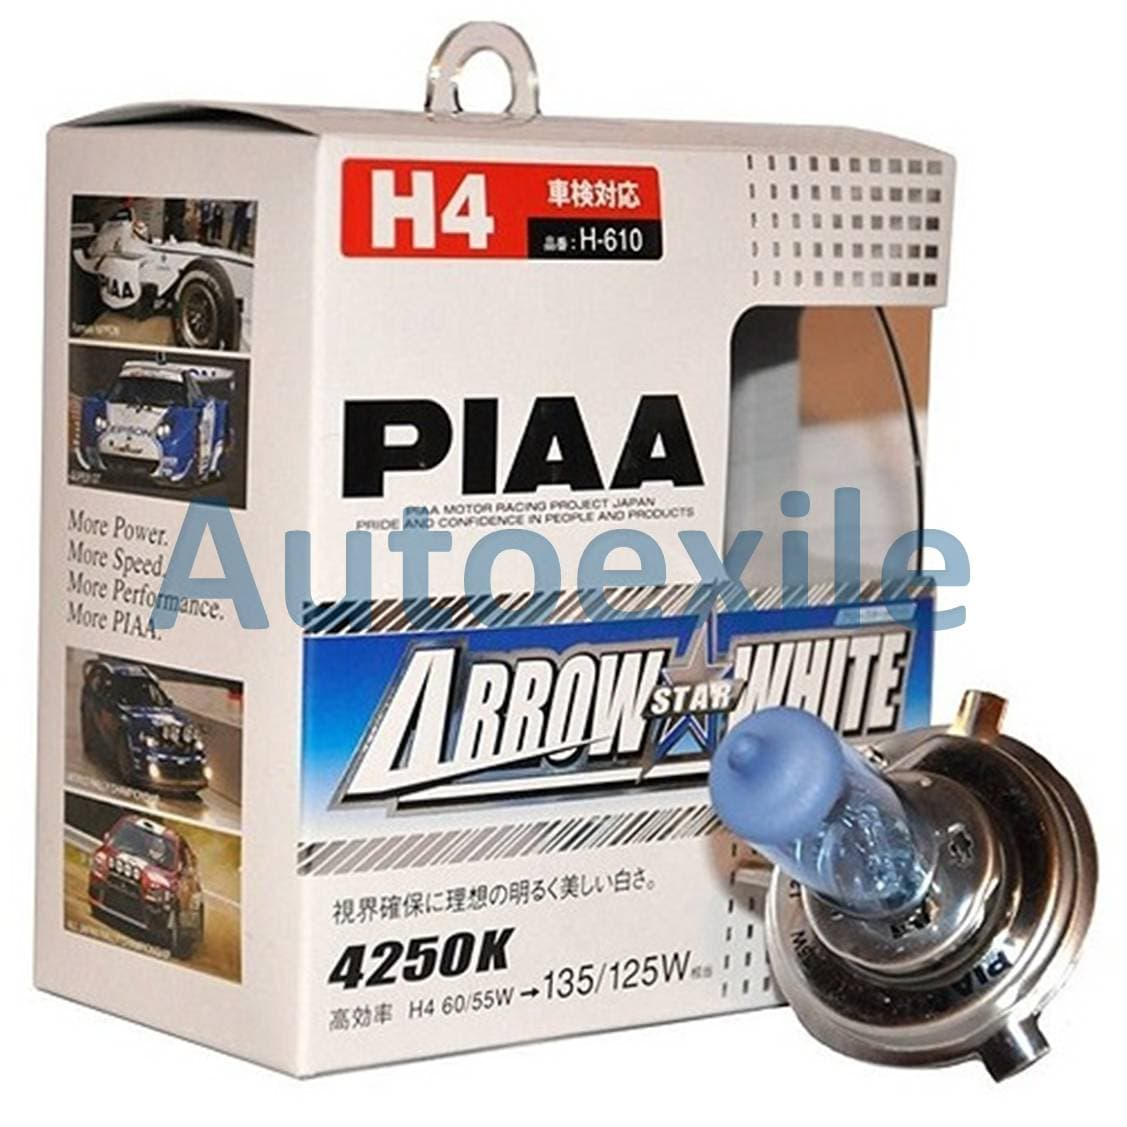 Jual Lampu Mobil Piaa Arrow Star White H4 60 55w Output 135 125w Philips X Treme Vision Plus 12v 3700k P43t 38 Depan 4250k Putih Kekuningan Made In Japan